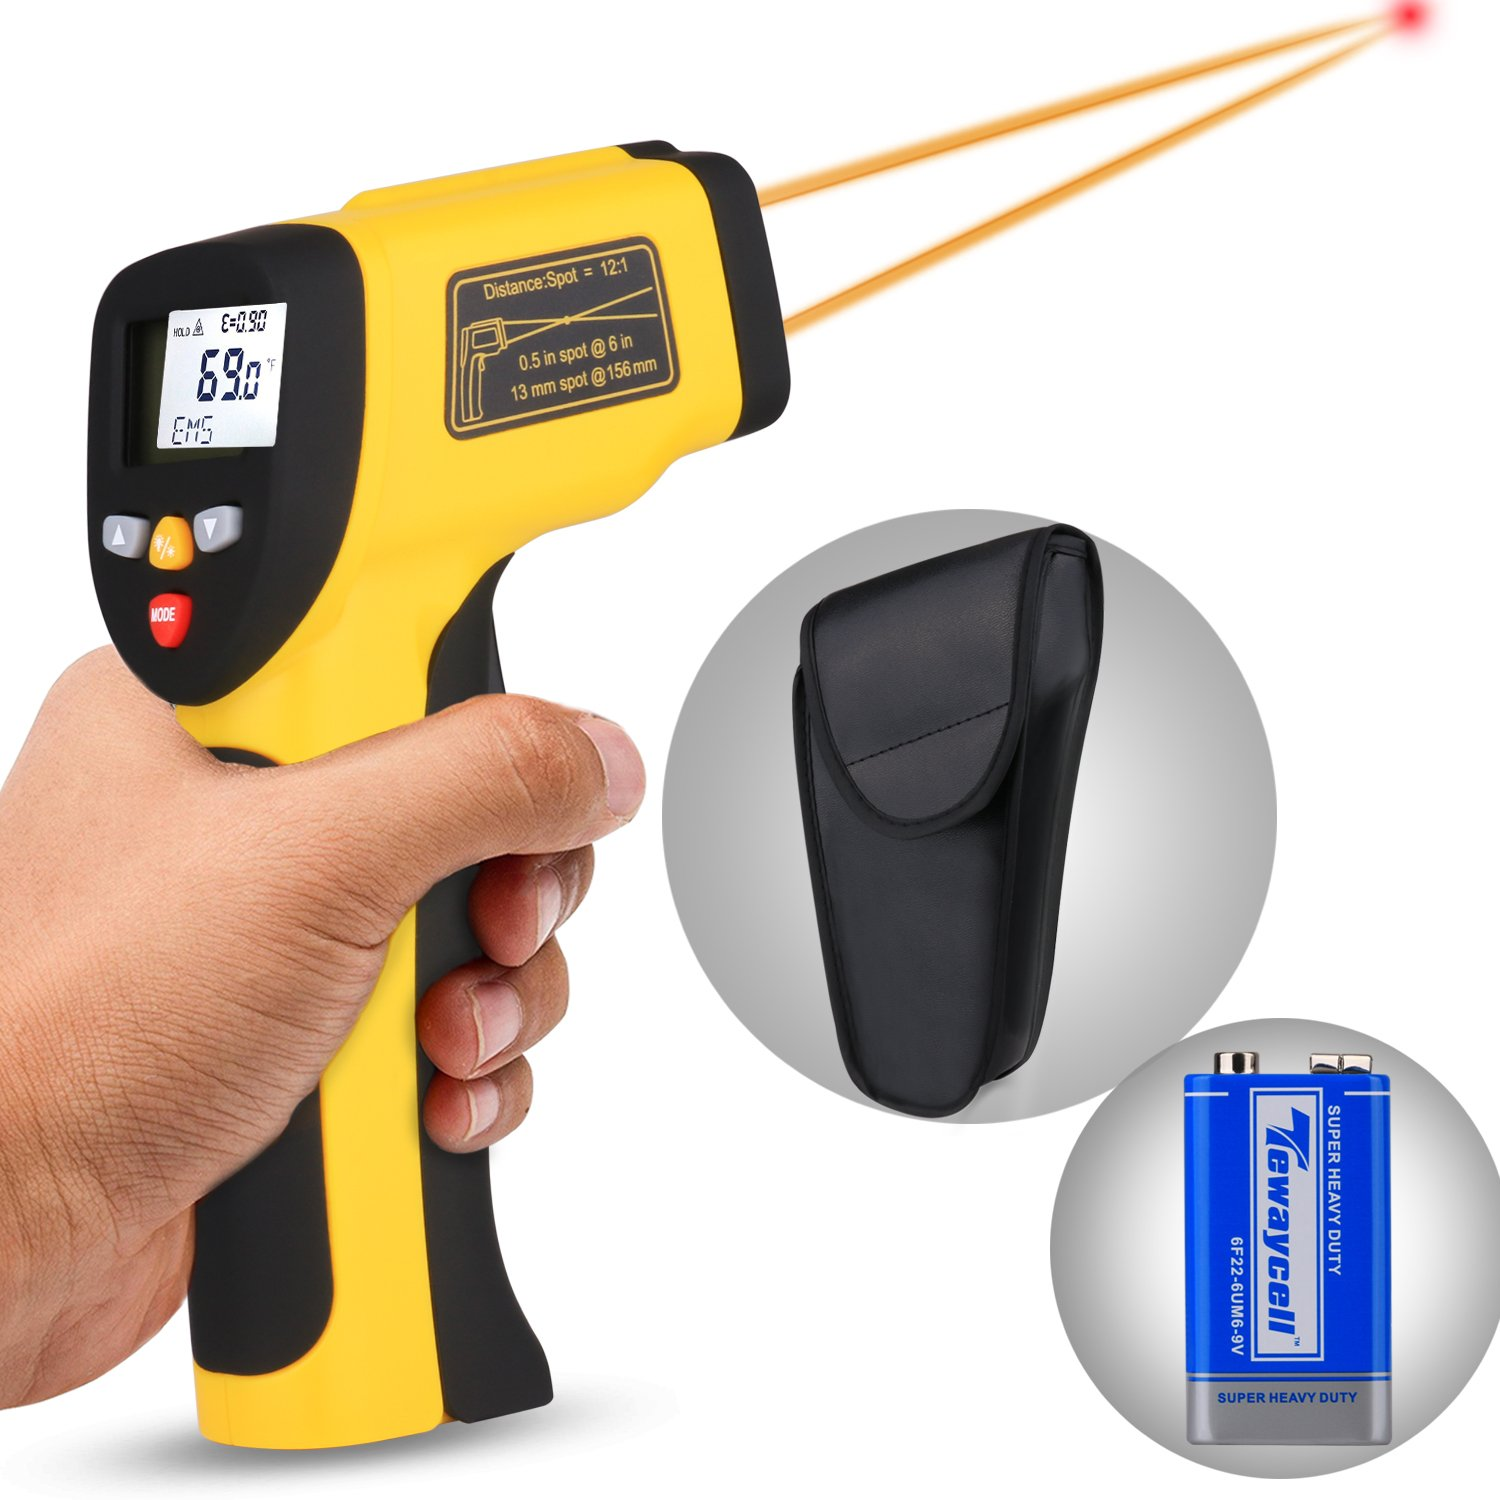 Dual Laser Infrared Thermometer, Zenic Professional Non-Contact Digital Temperature Measuring Gun with Adjustable Emissivity for Cooking/Brewing/Automobile & Industries, -50-650℃, D:S=12:1 by zenic